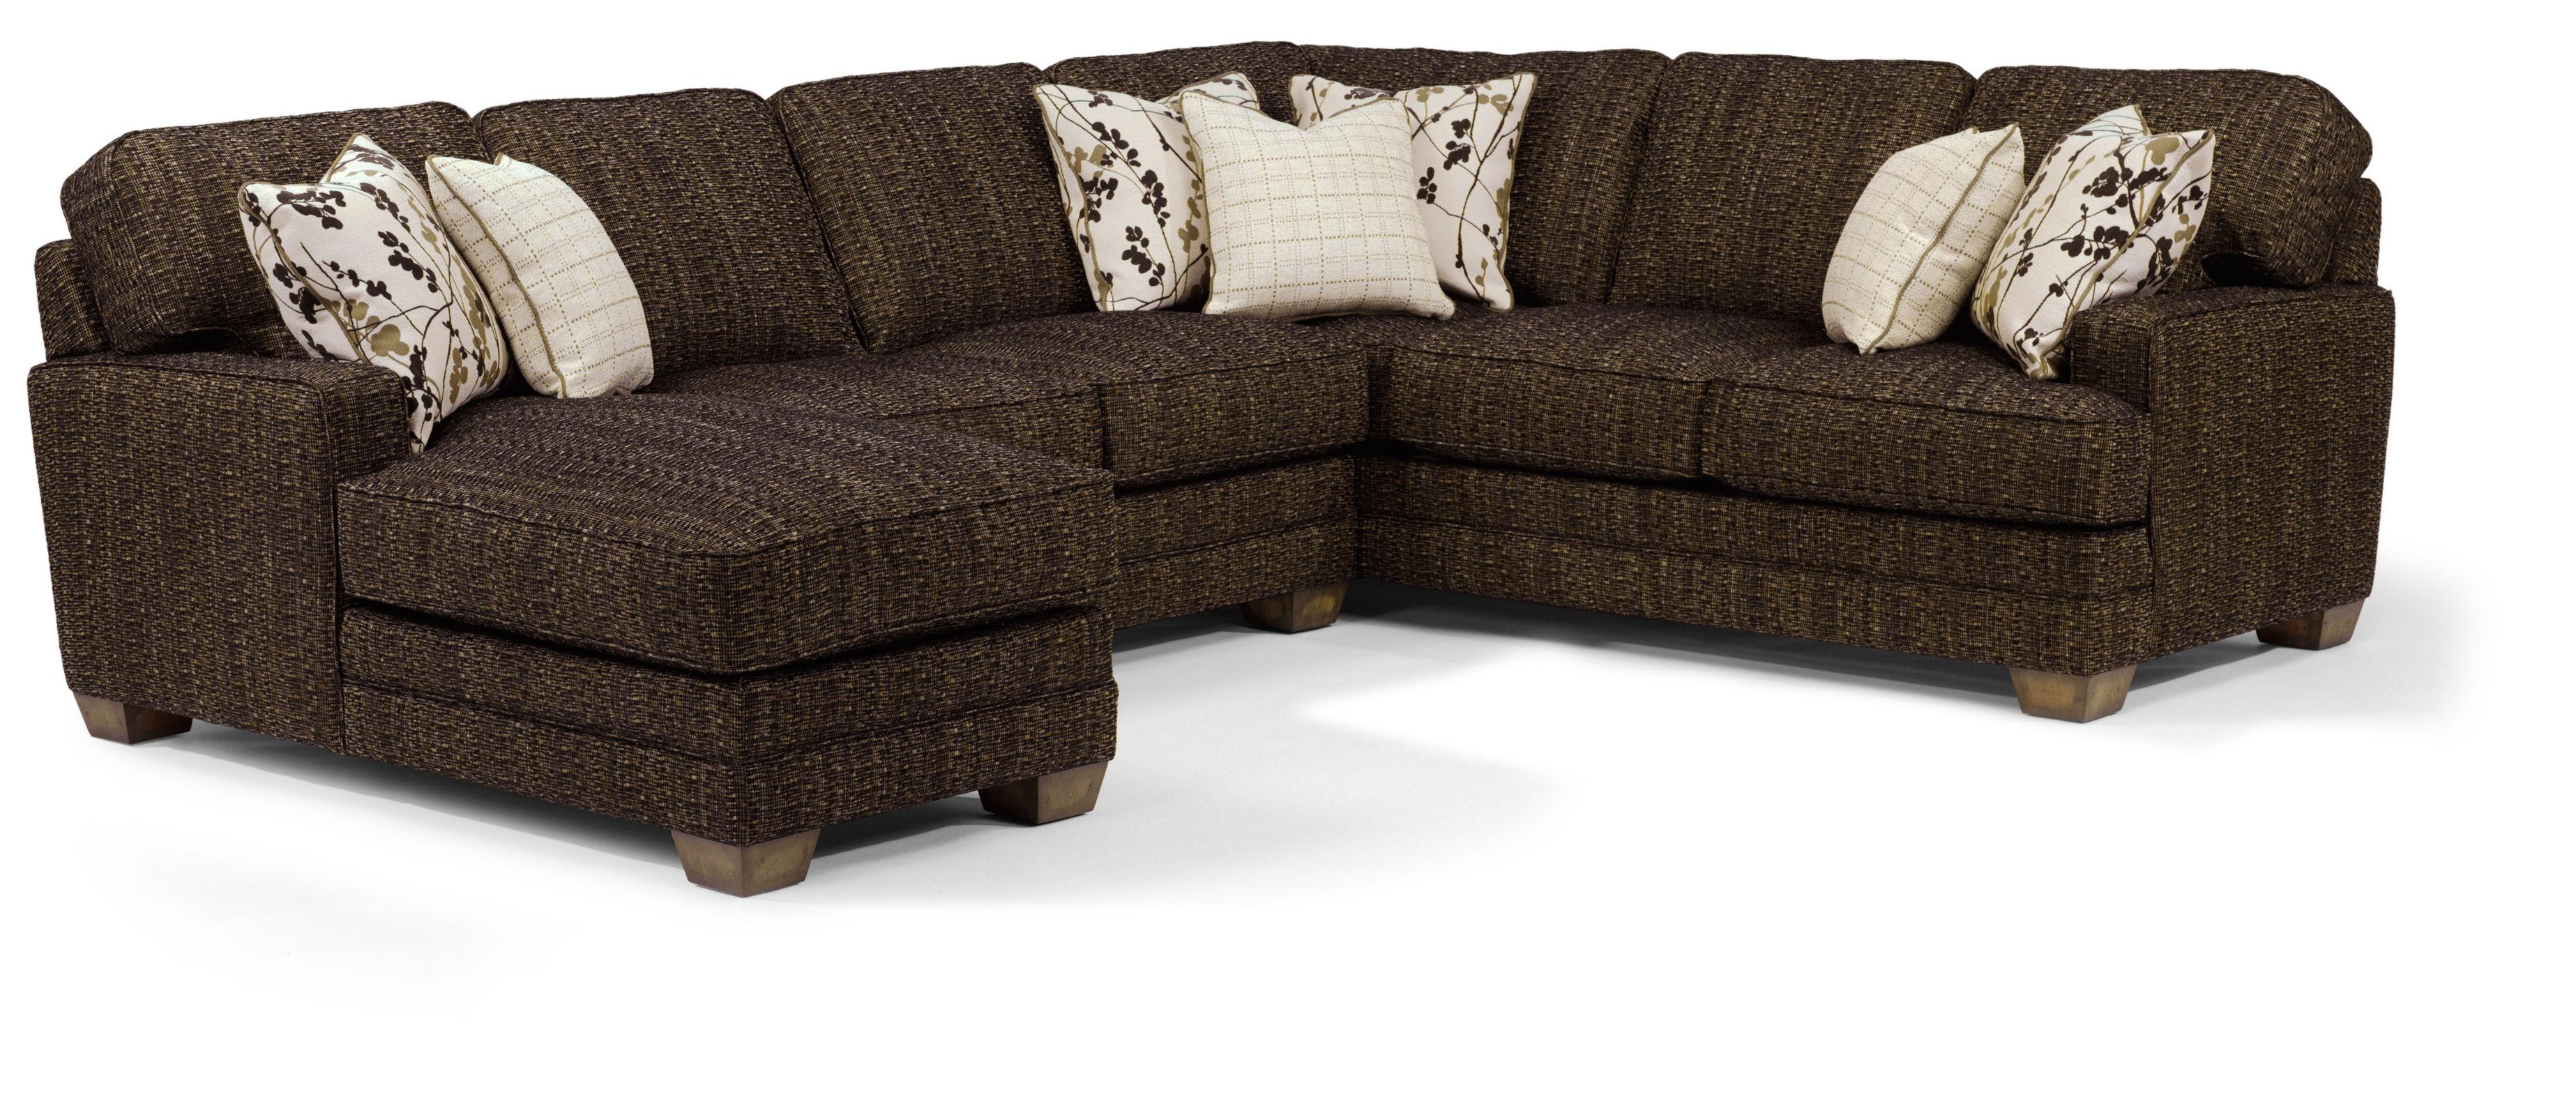 Delano 2 Piece Sectionals With Raf Oversized Chaise For Newest Flexsteel That's My Style <B>Customizable</b> 3 Piece Sectional Sofa (View 4 of 20)